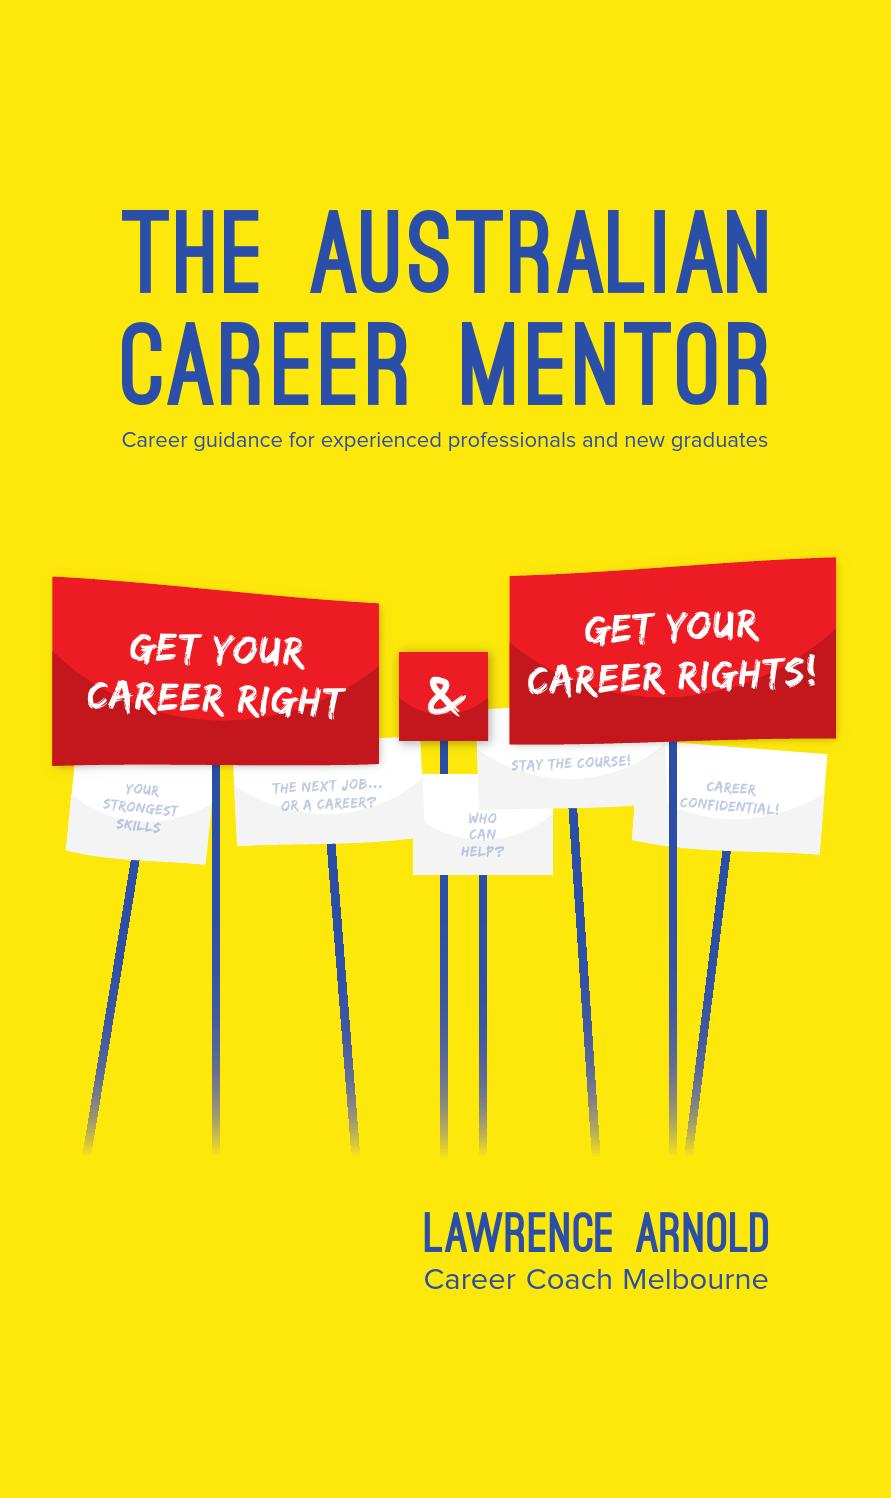 the career book the n career mentor lawrence arnold view a sample of the n career mentor